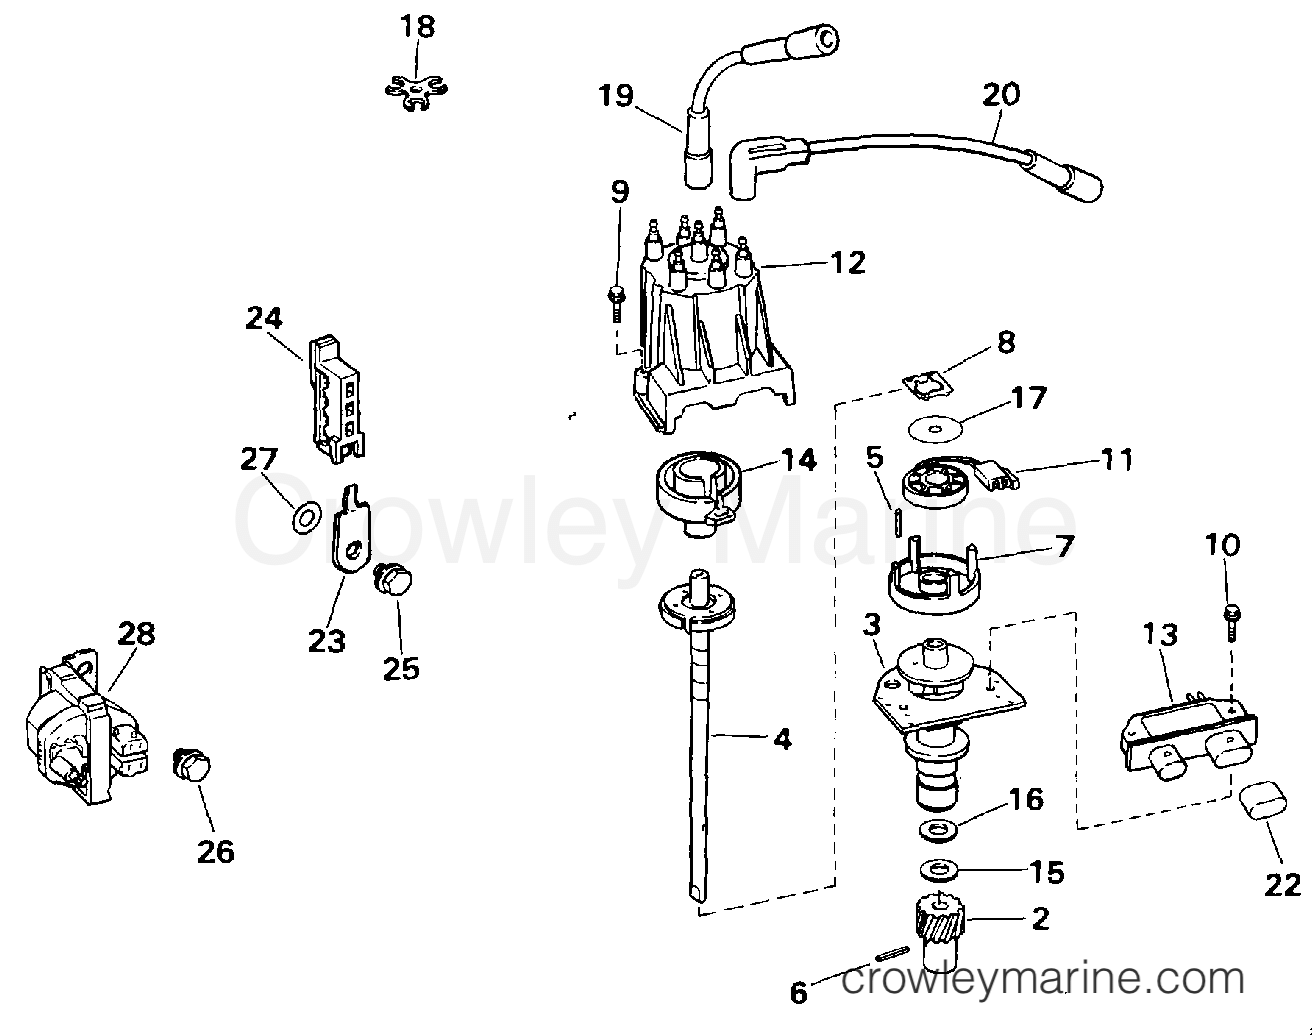 Distributor And Ignition Coil